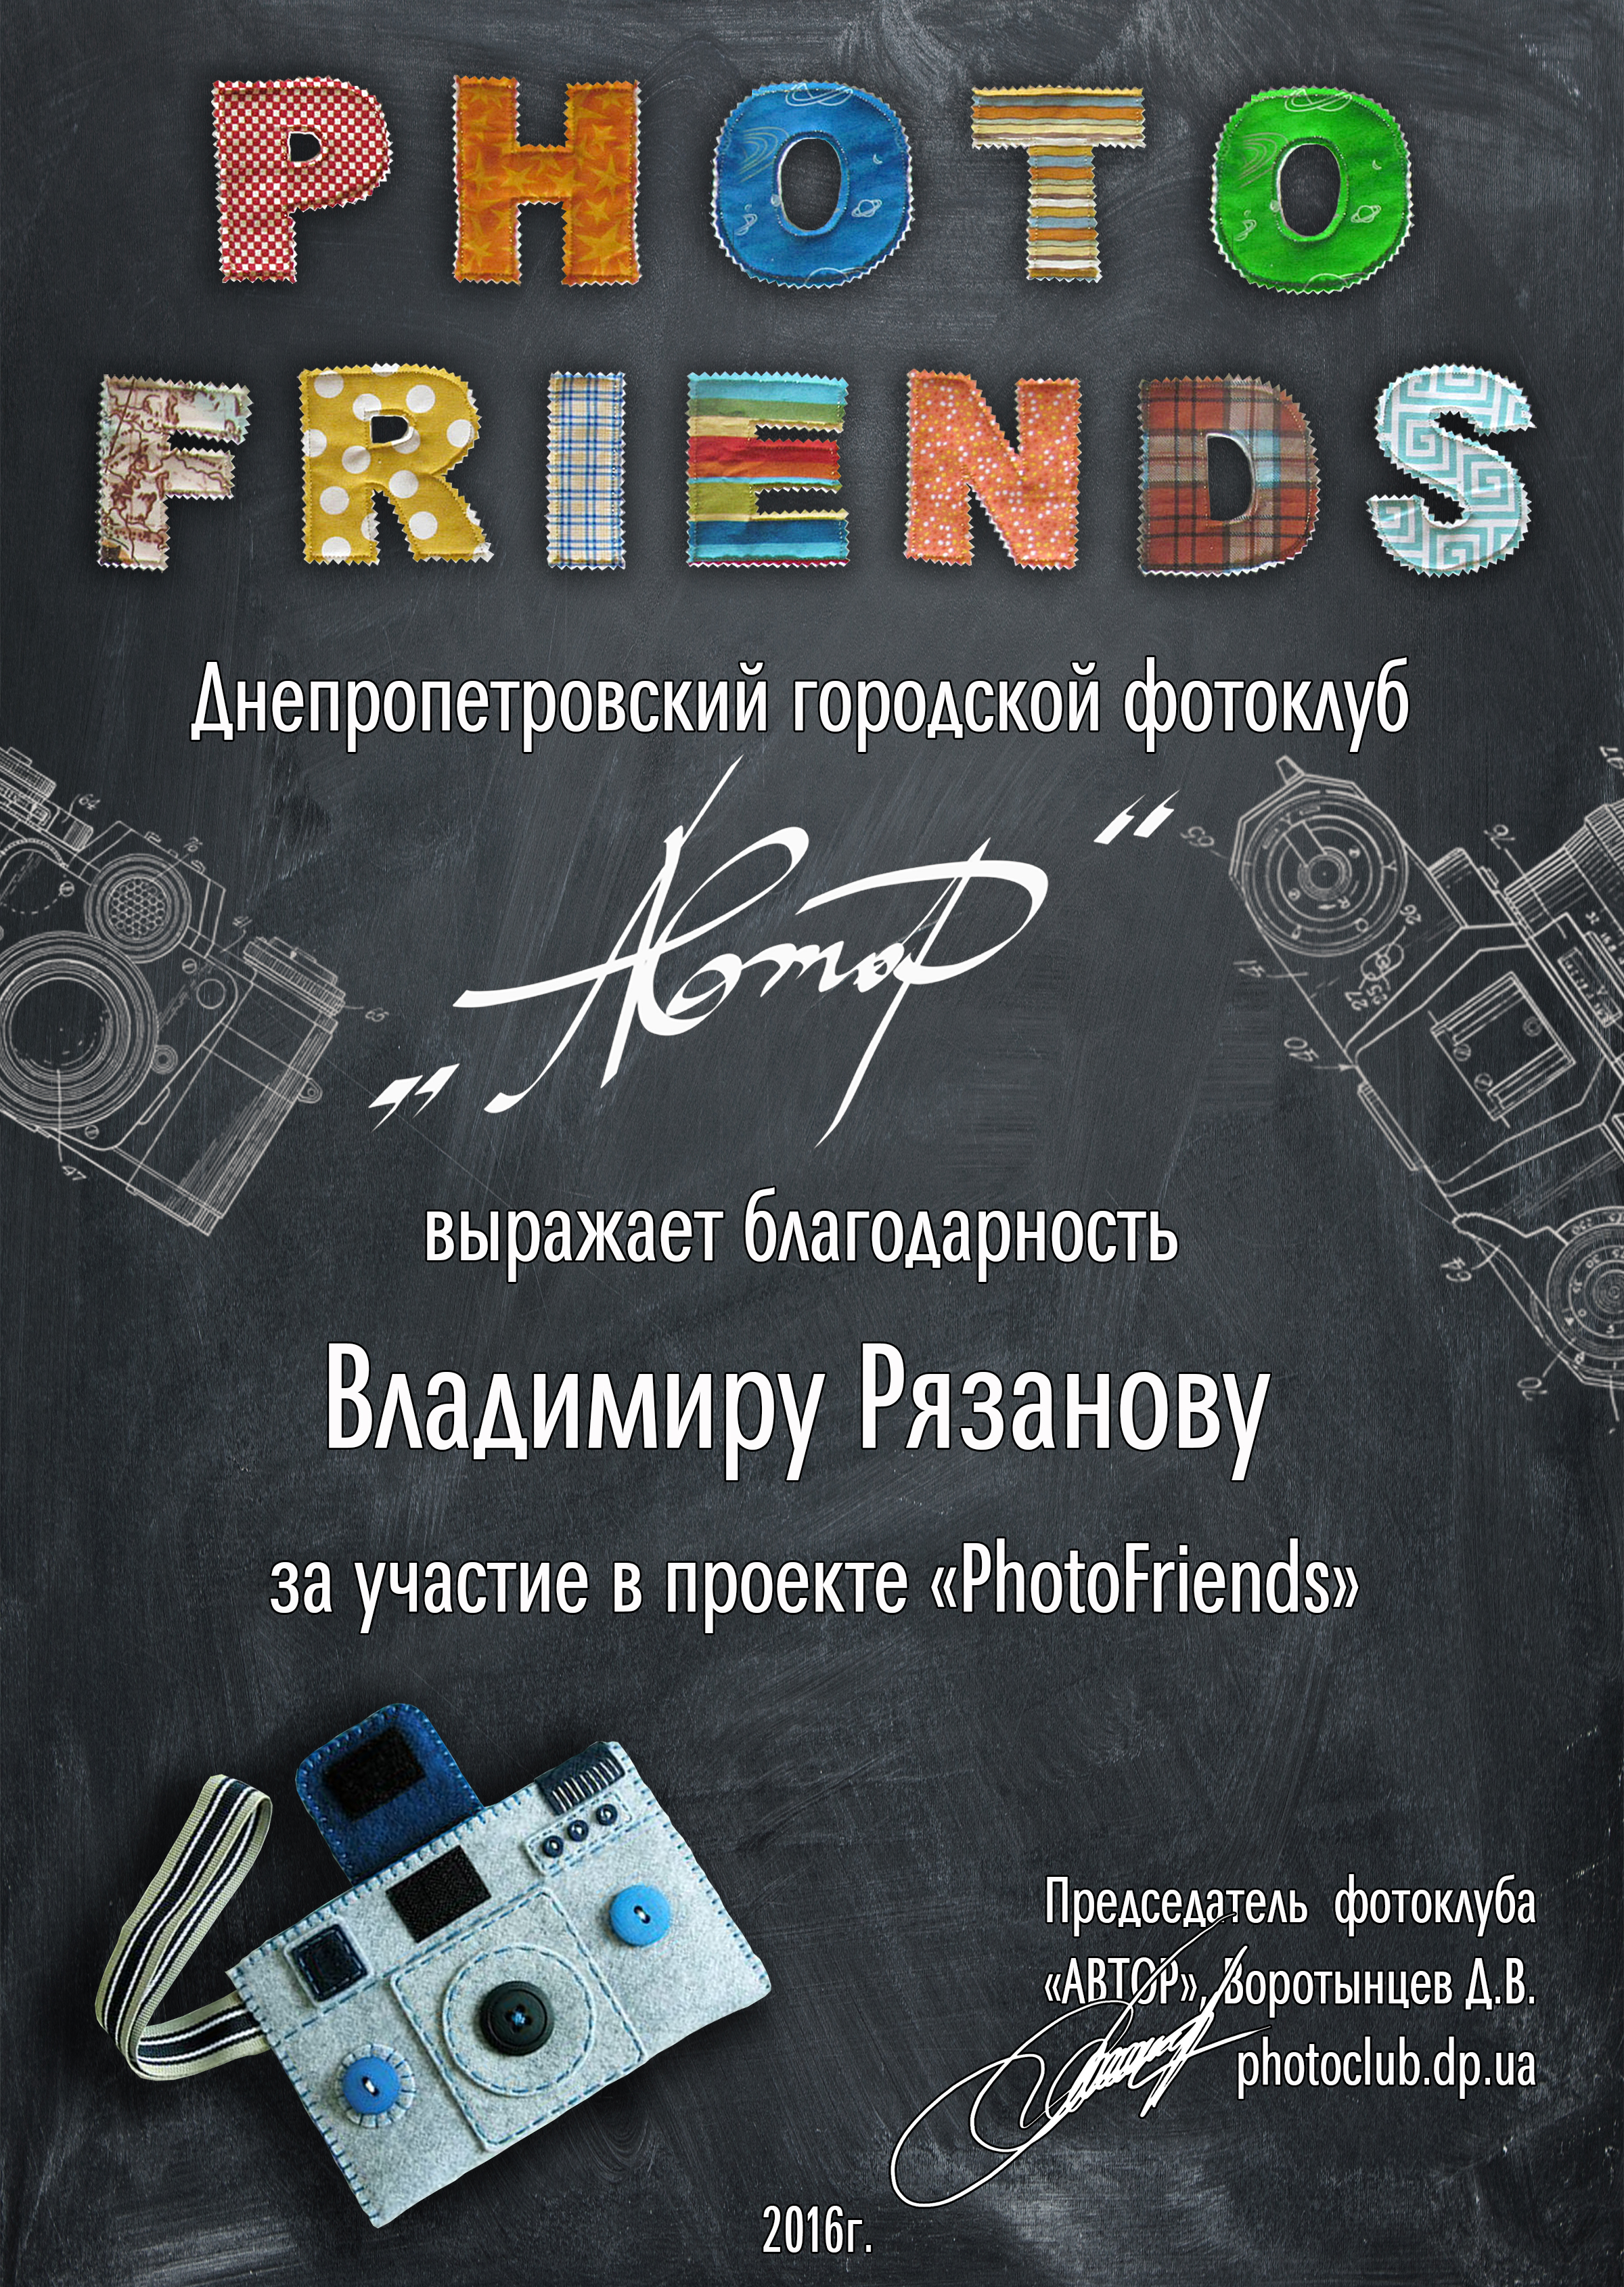 PHOTOFRIENDS Рязанов